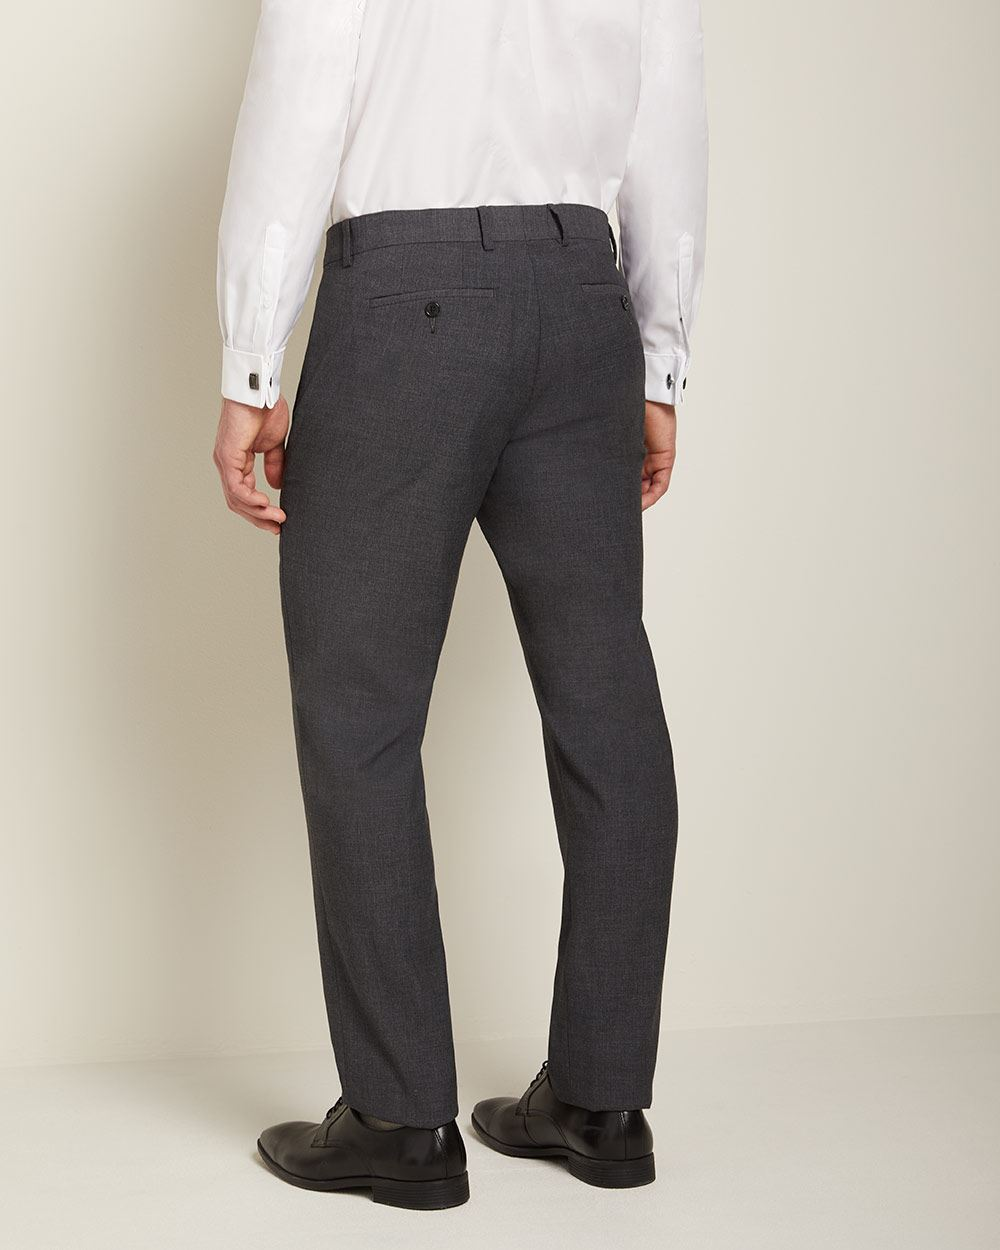 Essential Athletic Fit Dark heather grey suit pant